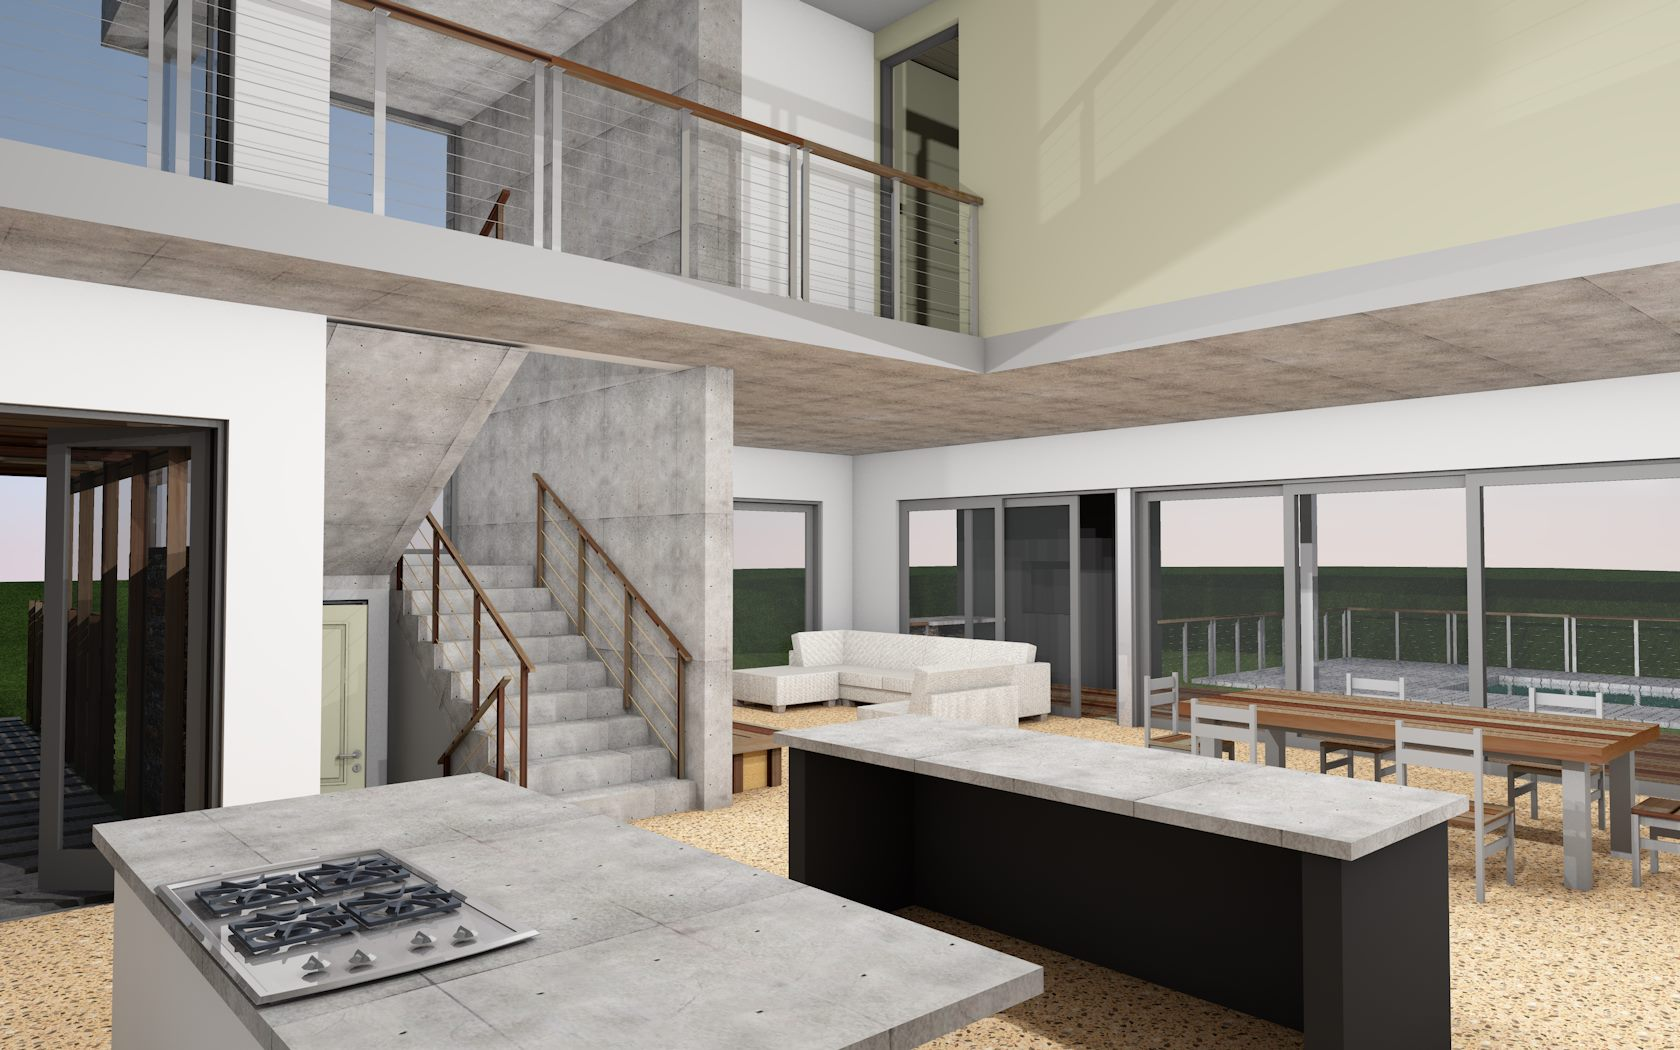 Refreshed Designs- House Pexa, Architecture render 4